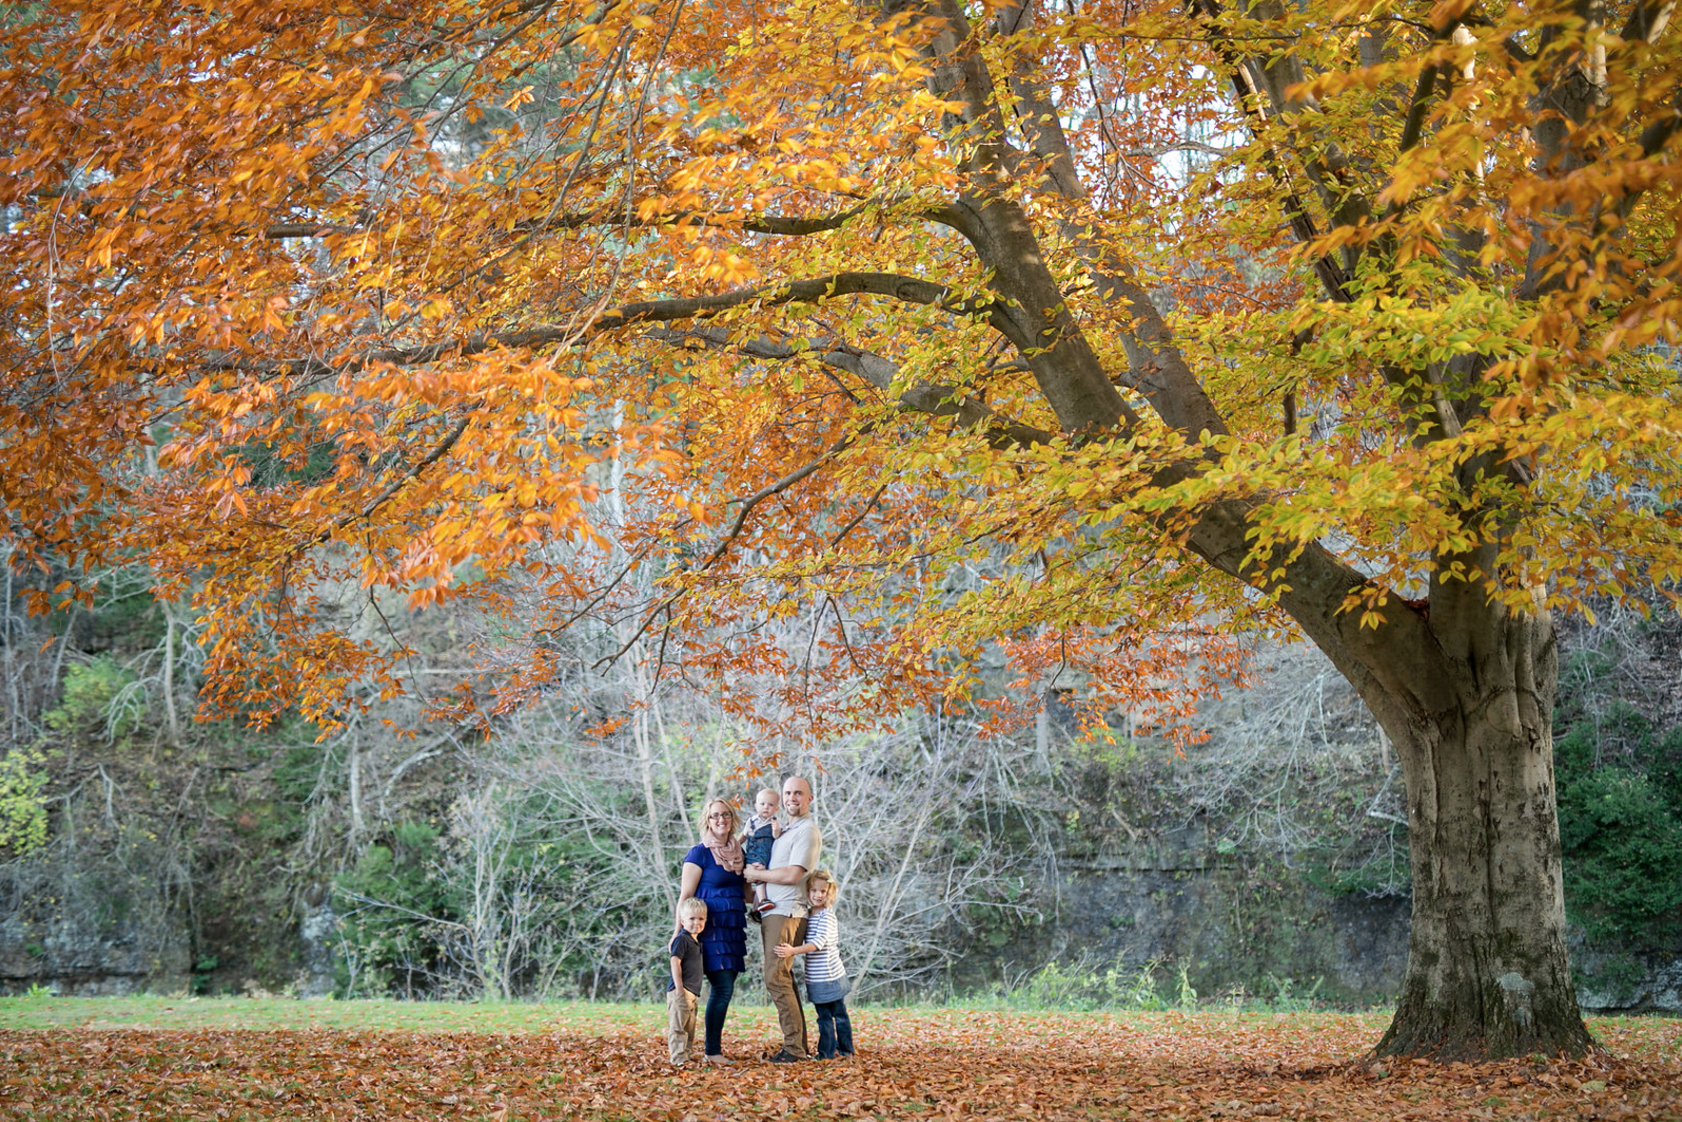 Weaver Family under the fall colors